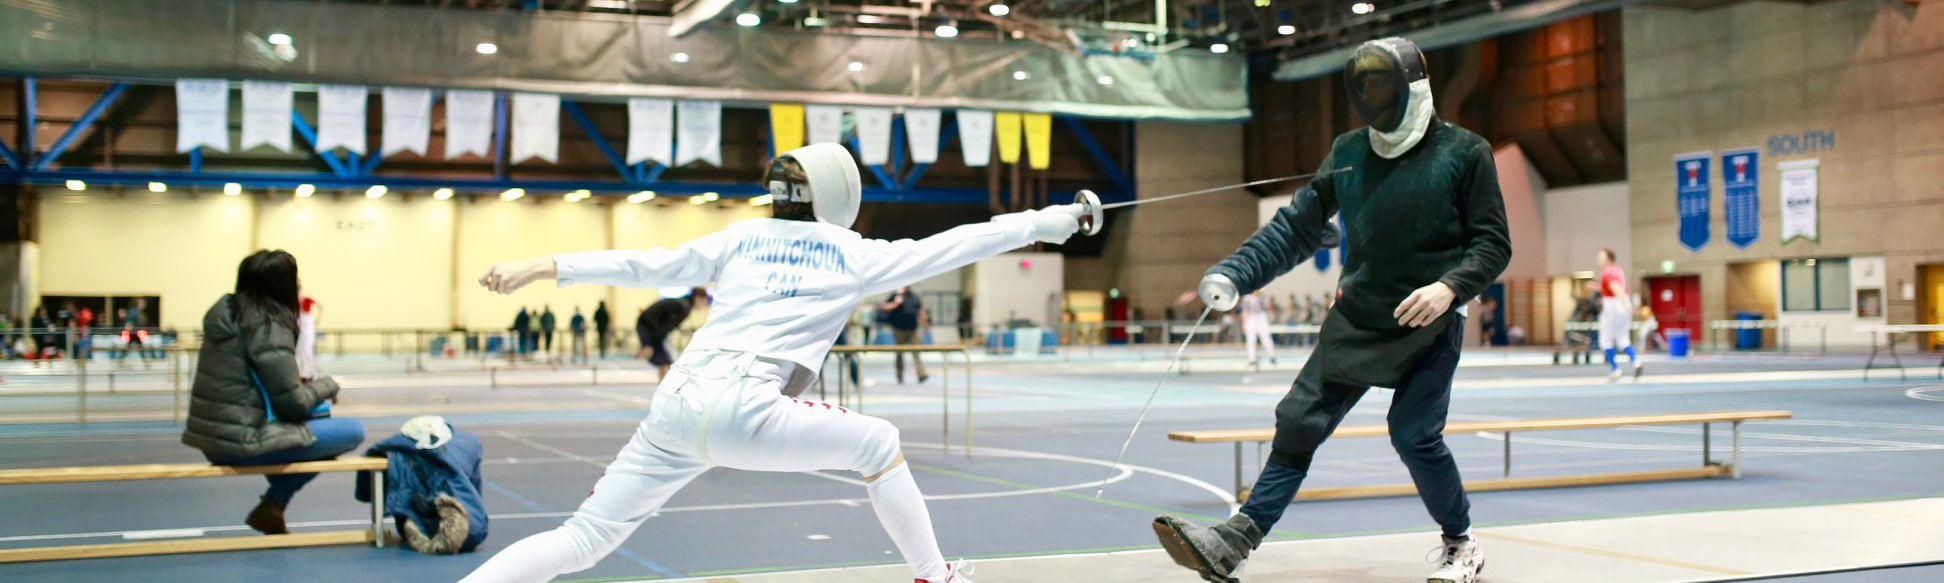 Veterans Fencing Ontario Fencing Association